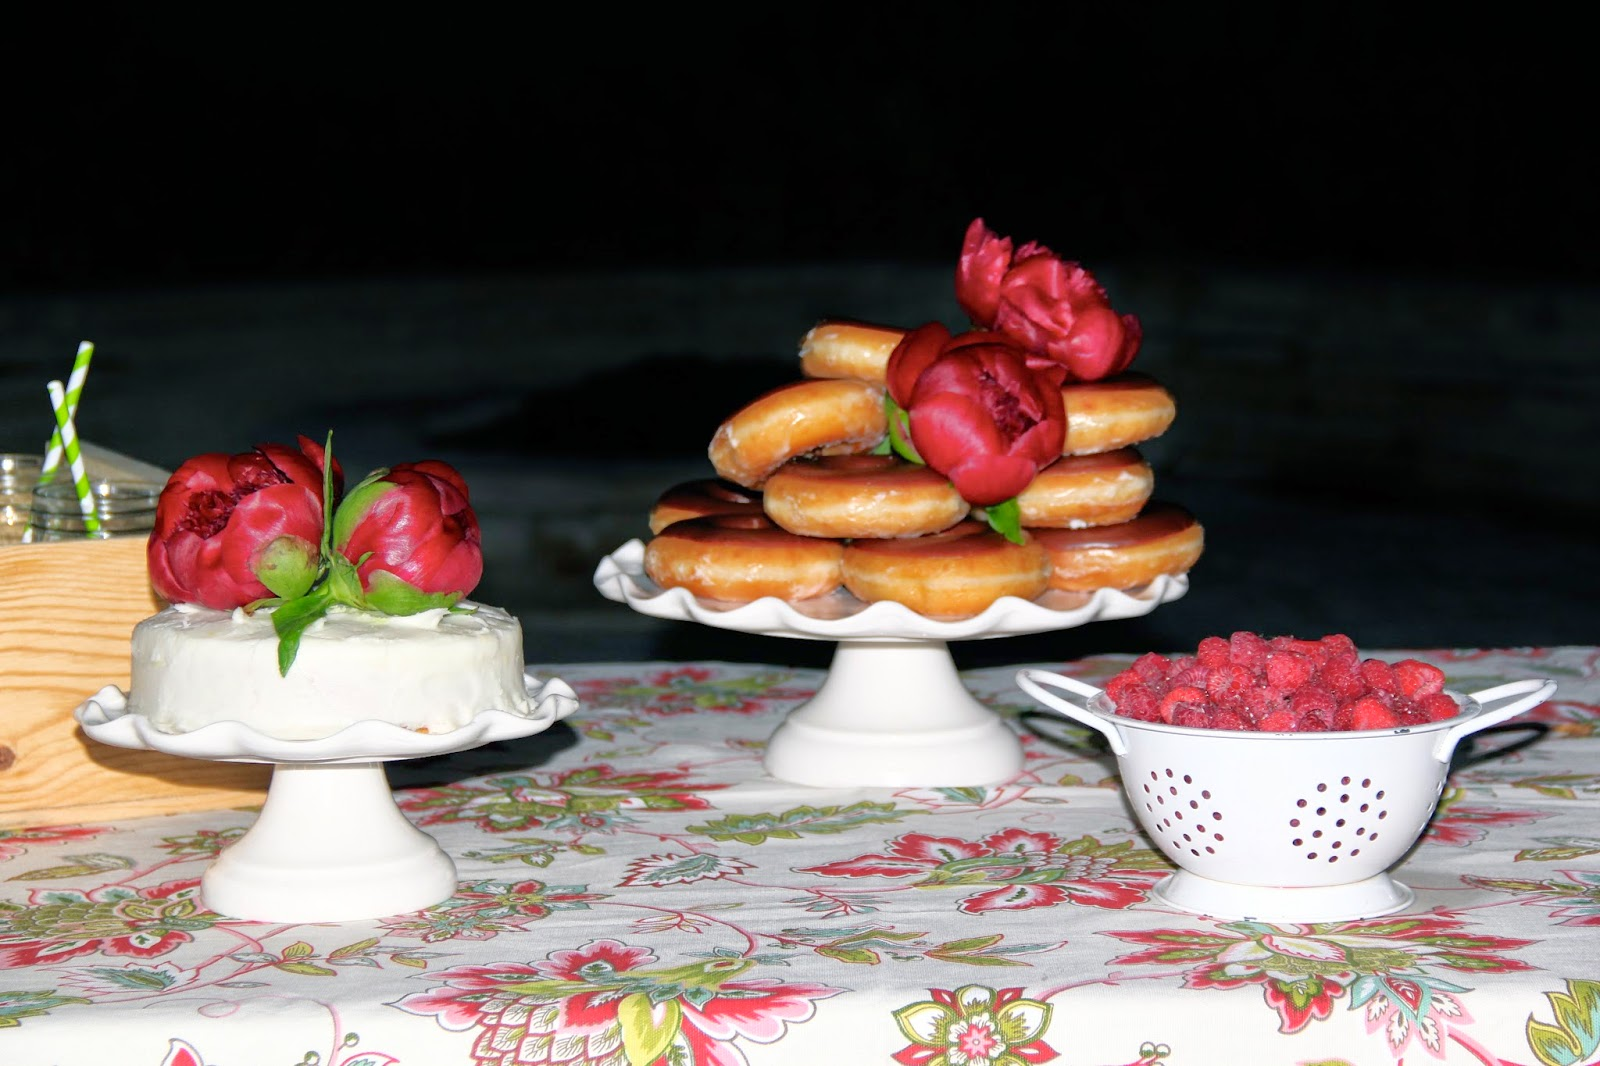 Candle, Donuts, Cake, Lemonade, Candle, Raspberries, Lanterns